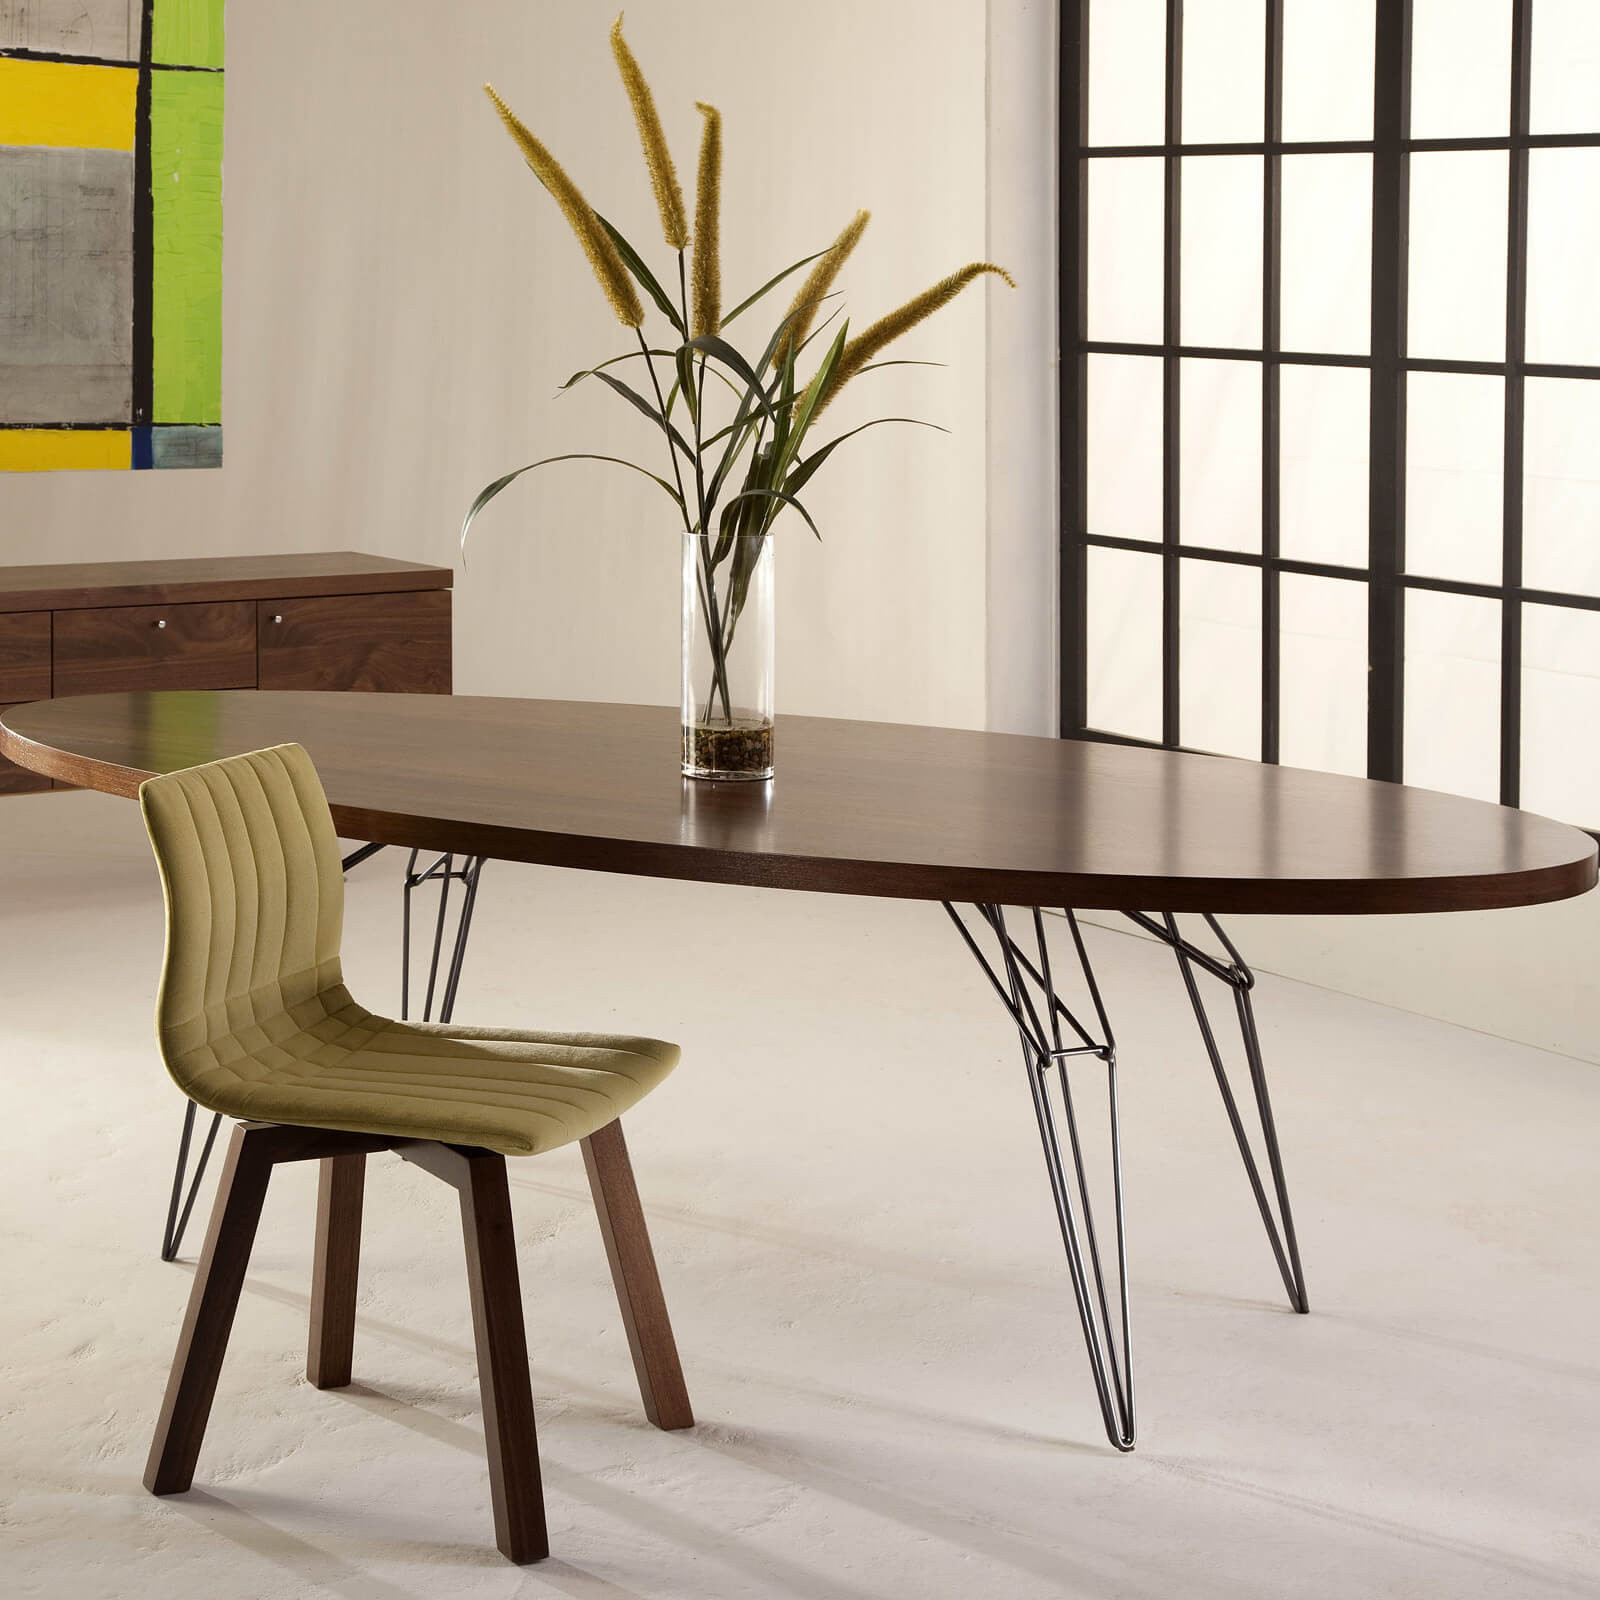 Best ideas about Dining Room Tables . Save or Pin 38 Types Dining Room Tables Extensive Buying Guide Now.